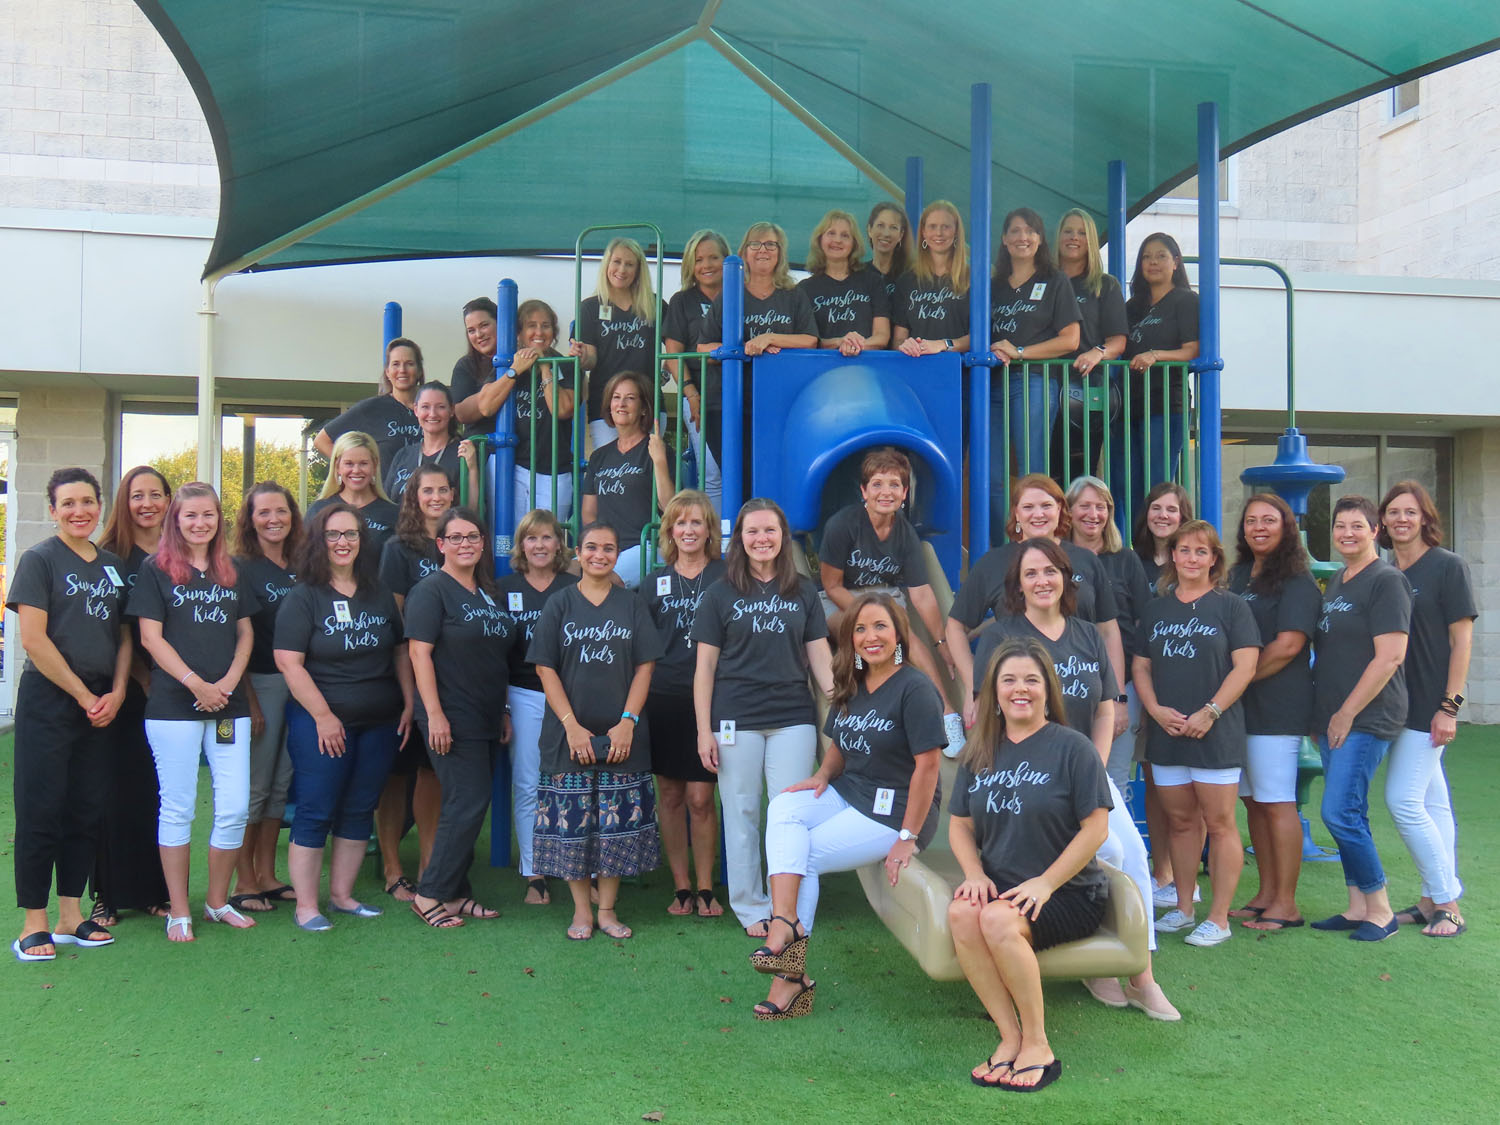 Sunshine Kids Teachers and Staff 2019-2020